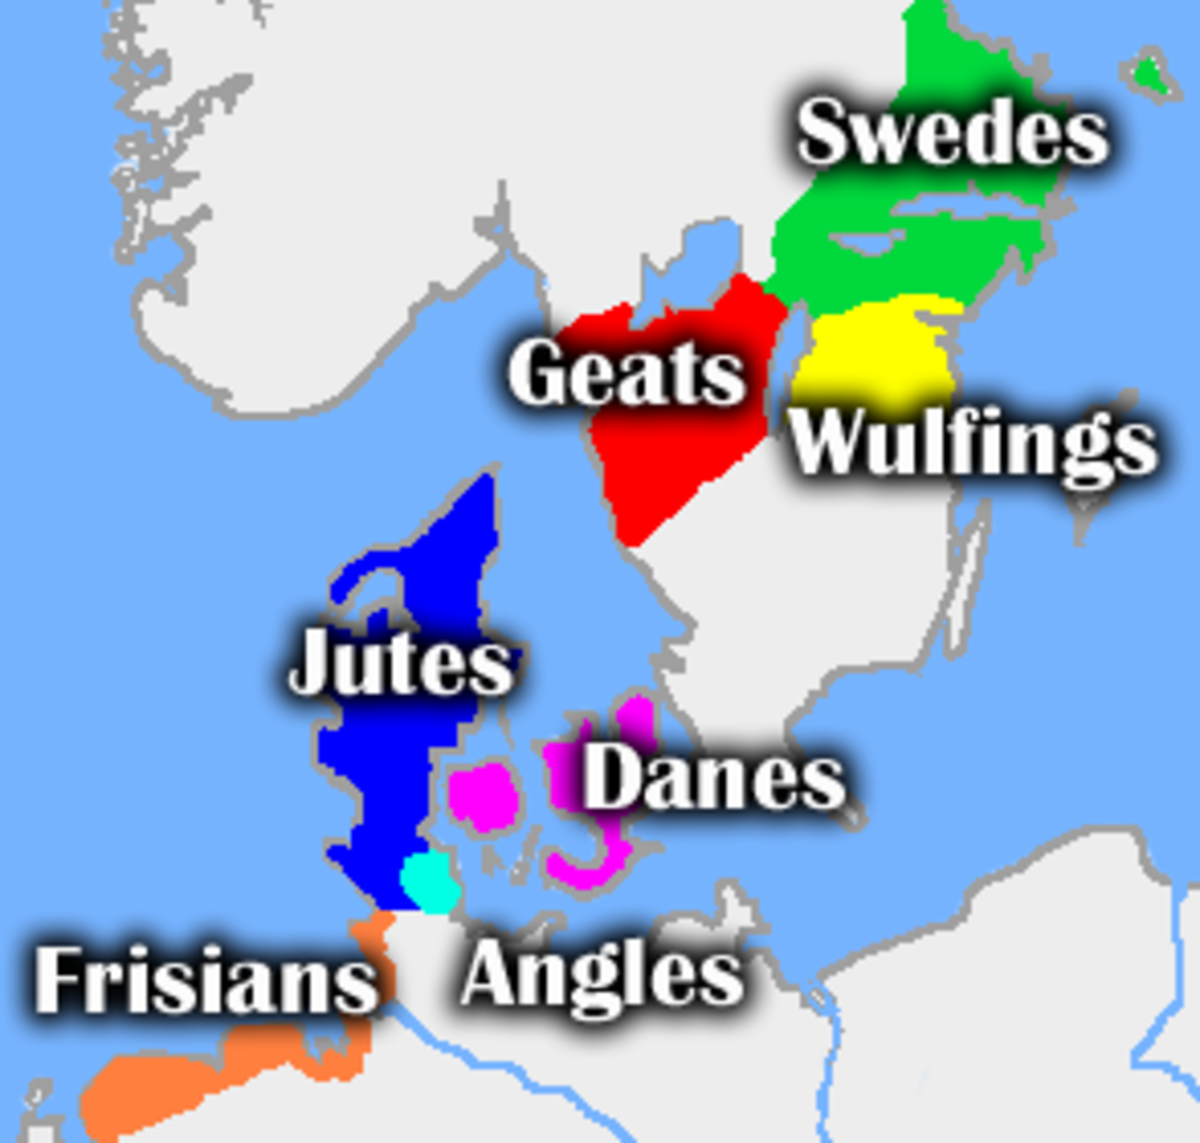 This map illustrates where each of the tribes mentioned in Beowulf resides.